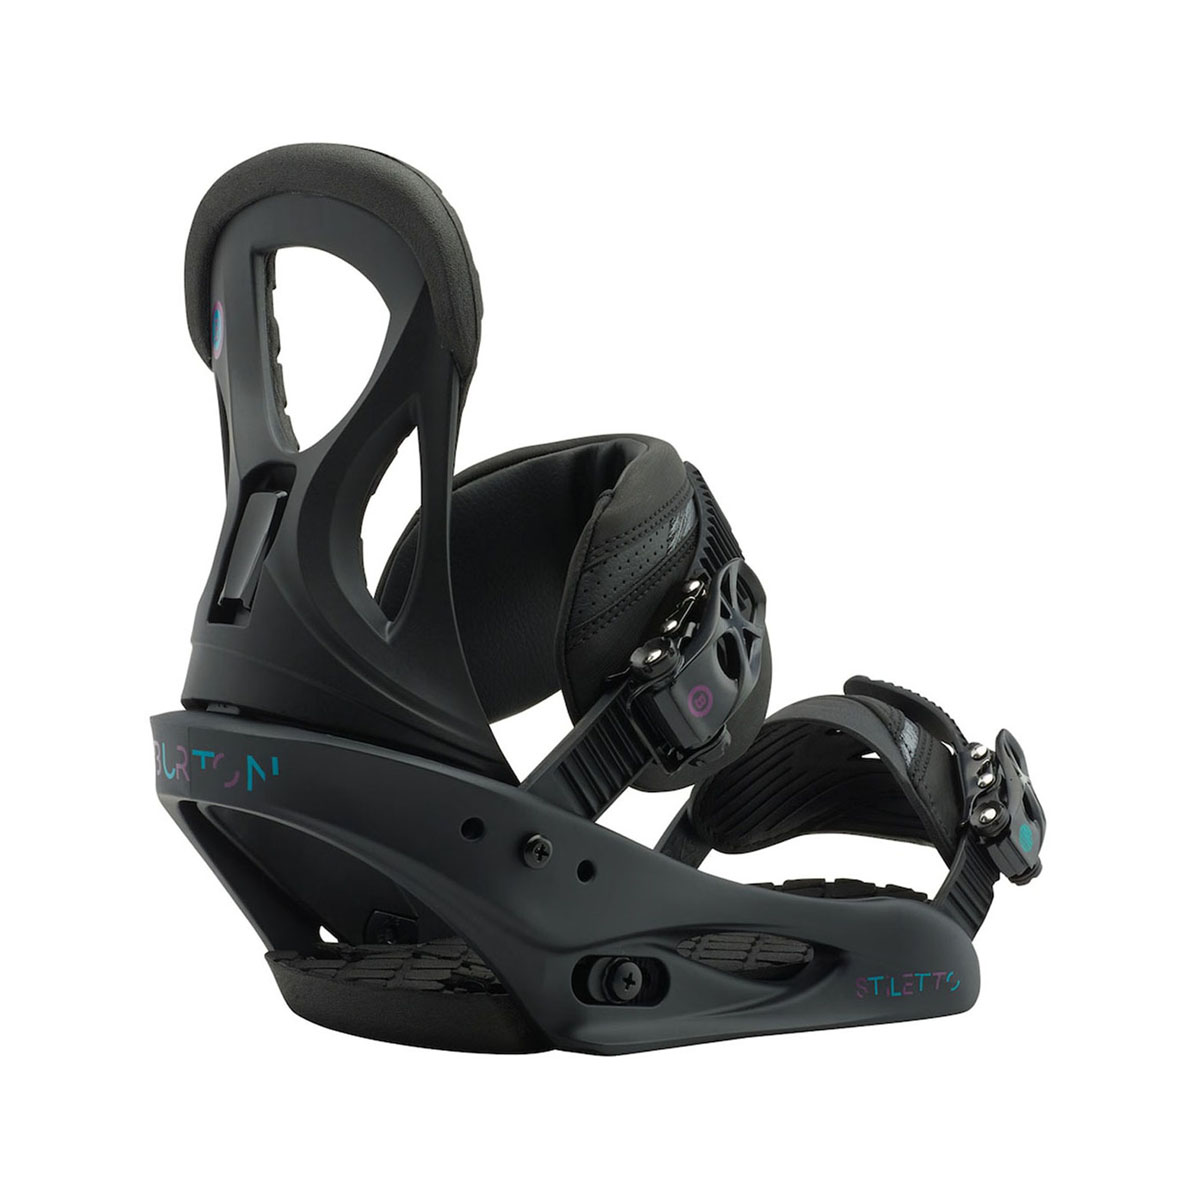 Burton STILETTO 18/19